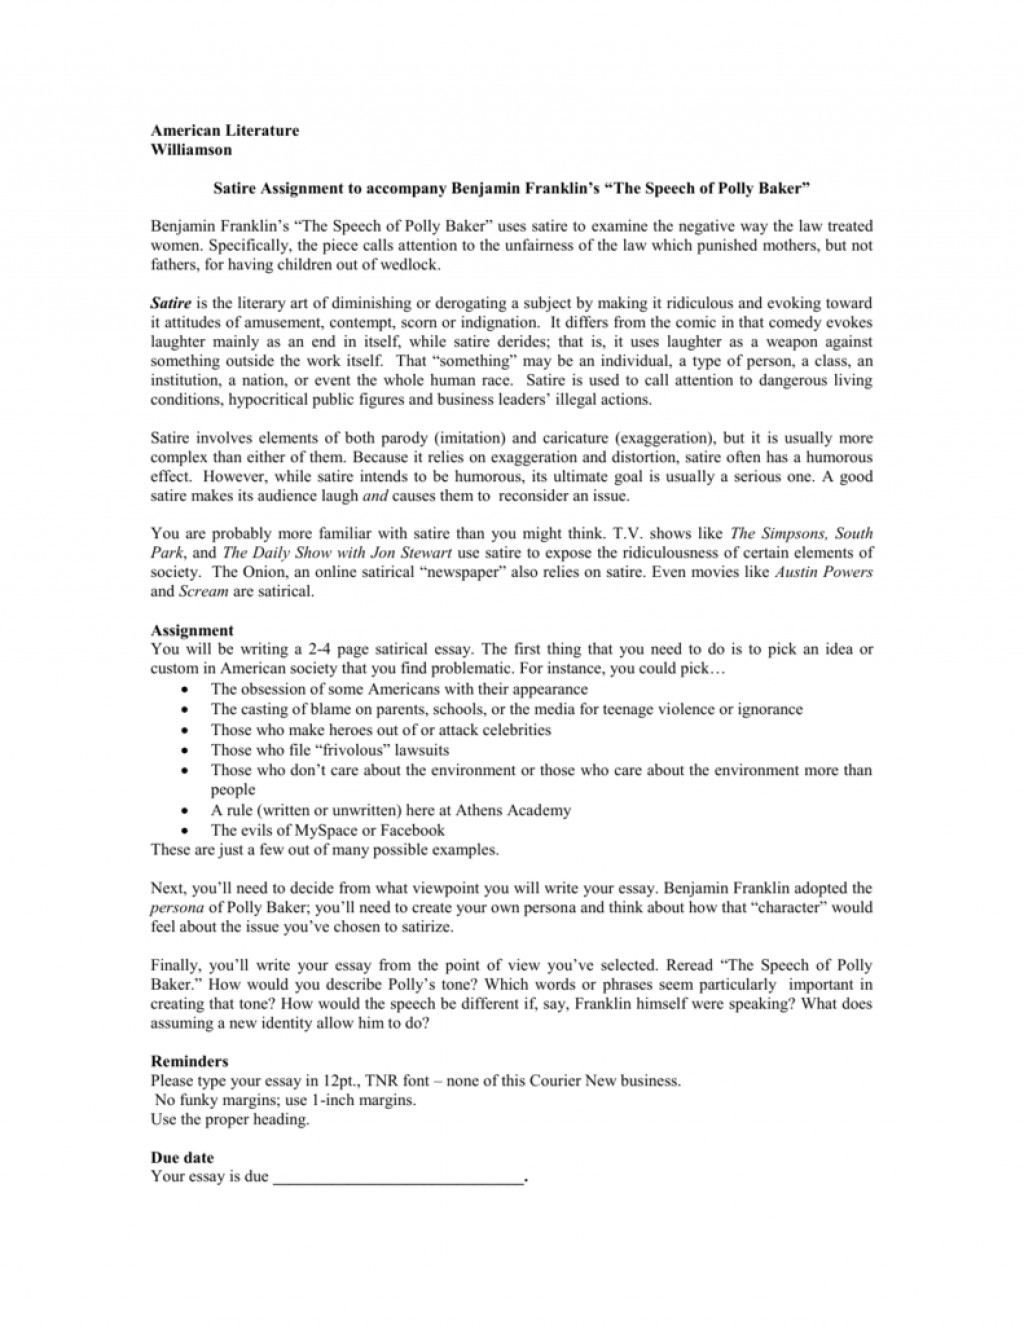 016 008005442 1 Essay Example How To Write Fascinating A Satire On Obesity Outline Essay-example Large